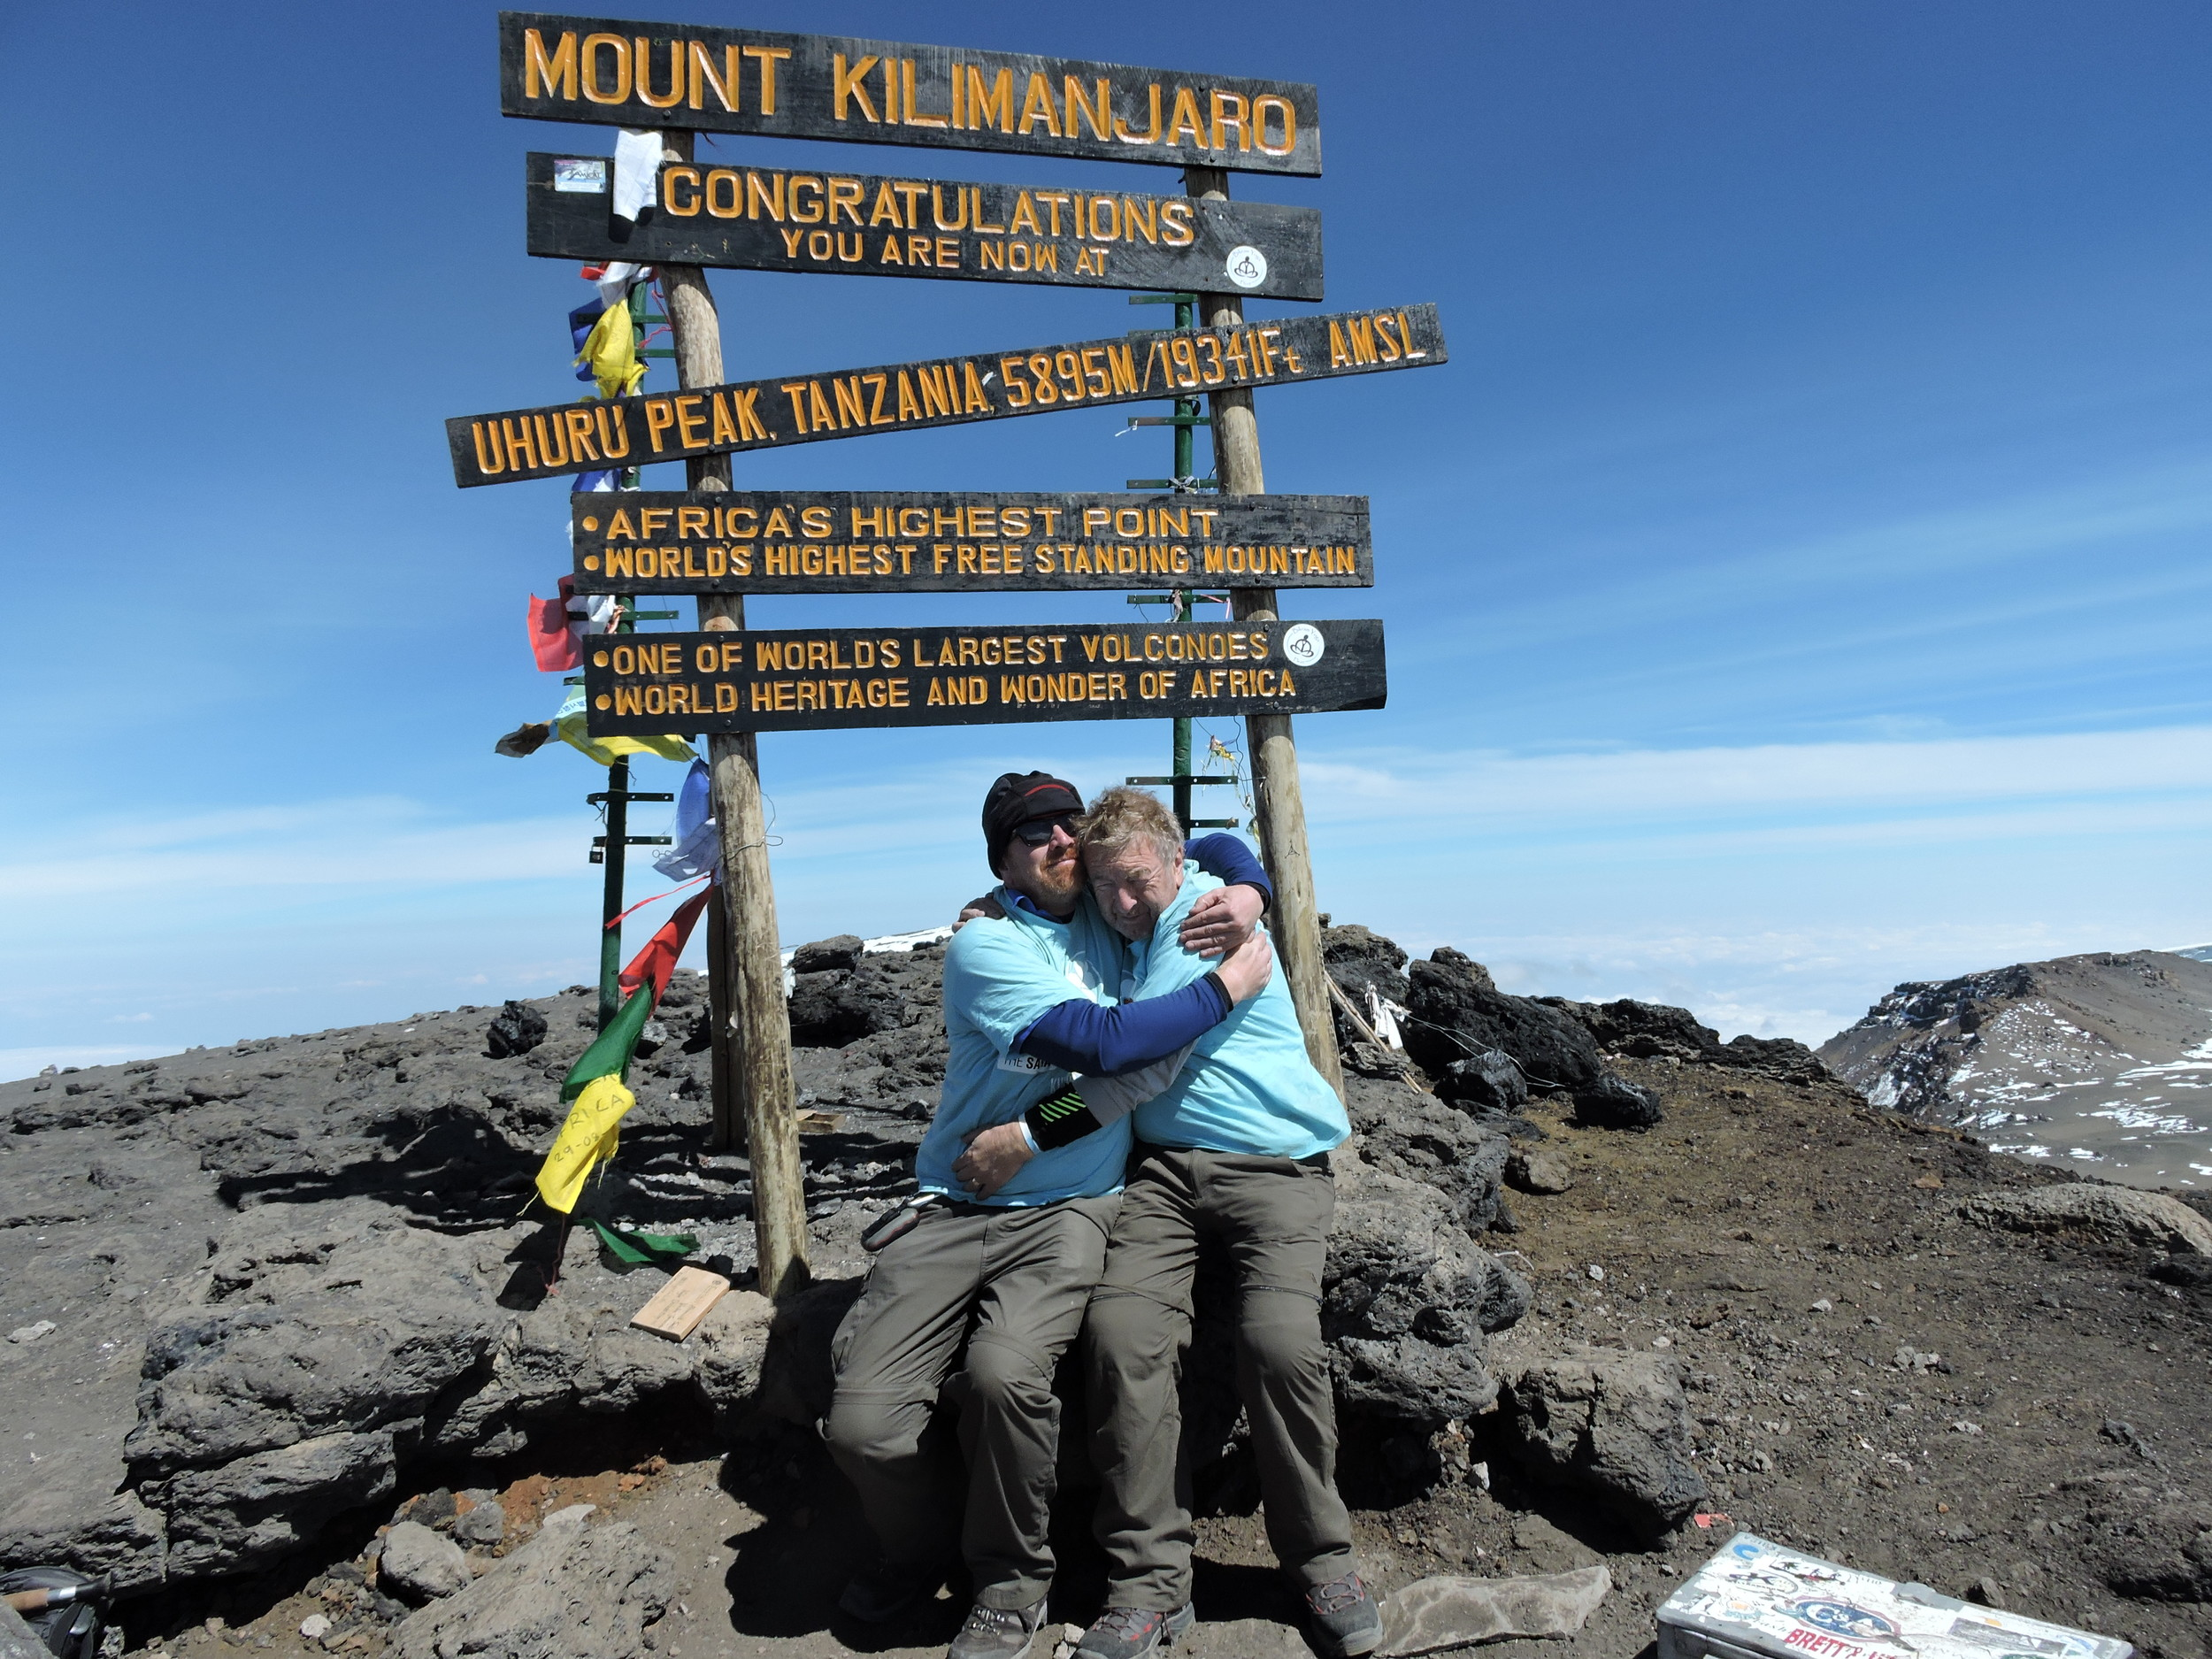 Sarah's father, Vic, and Sarah's half Brother, Simon, embrace at Uhuru Peak, the summit of Mount Kilimanjaro. A highly emotional occasion for them both.